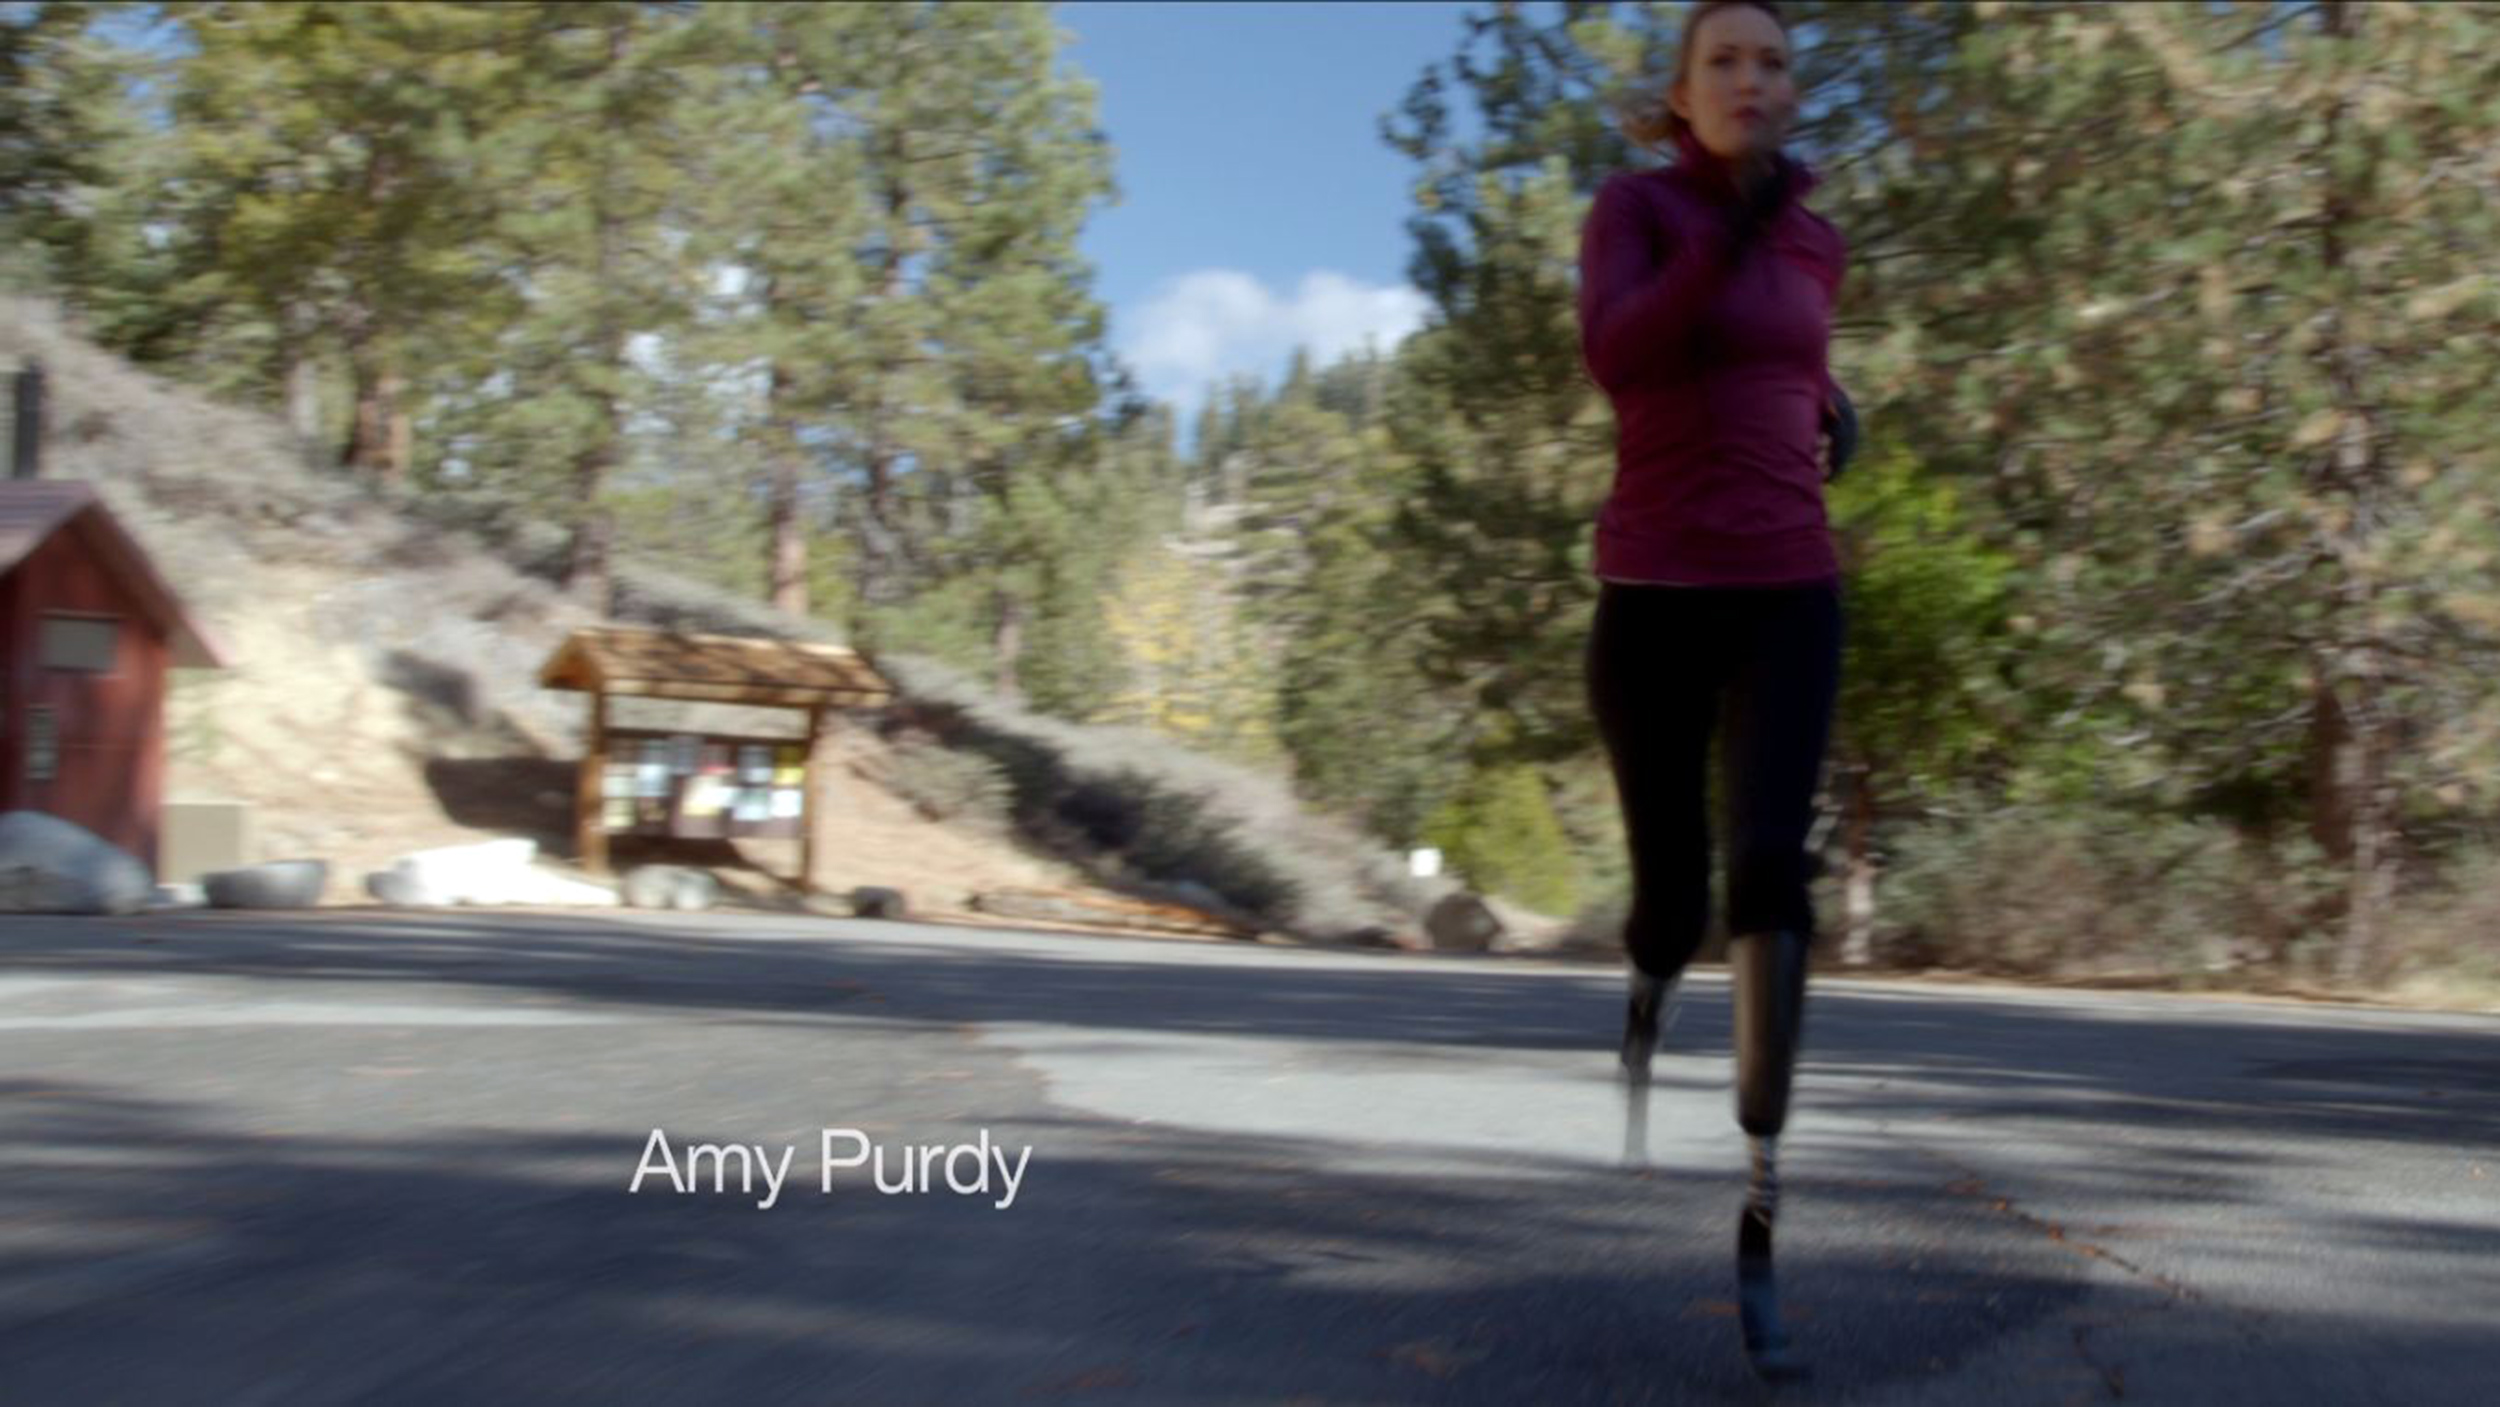 Toyota's Super Bowl ad has Amy Purdy defying the odds ...